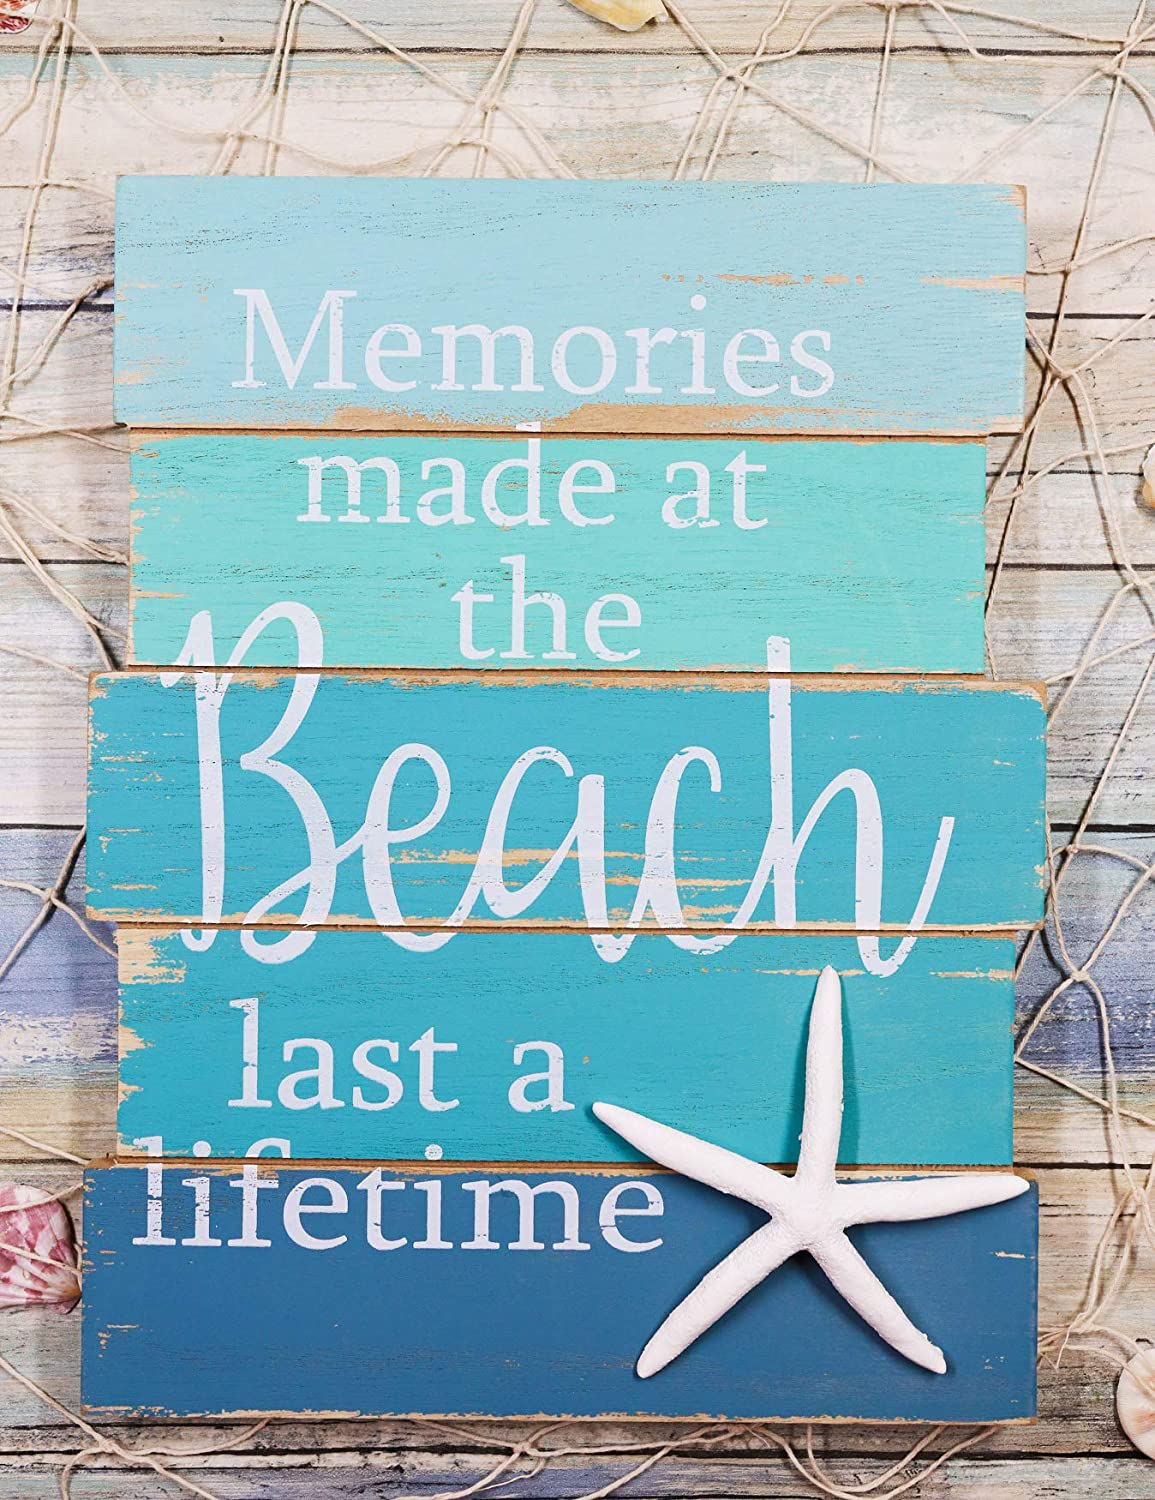 "Ebros Nautical Memories Made At The Beach Last A Lifetime Starfish Blue Wooden Wall Decor Sign Sea Star Decorative Plaque 15.5""Tall Coastal Sandy Bluff Lagoon Marine Nursery Kids Bedroom Kitchen Walls Door Signs"